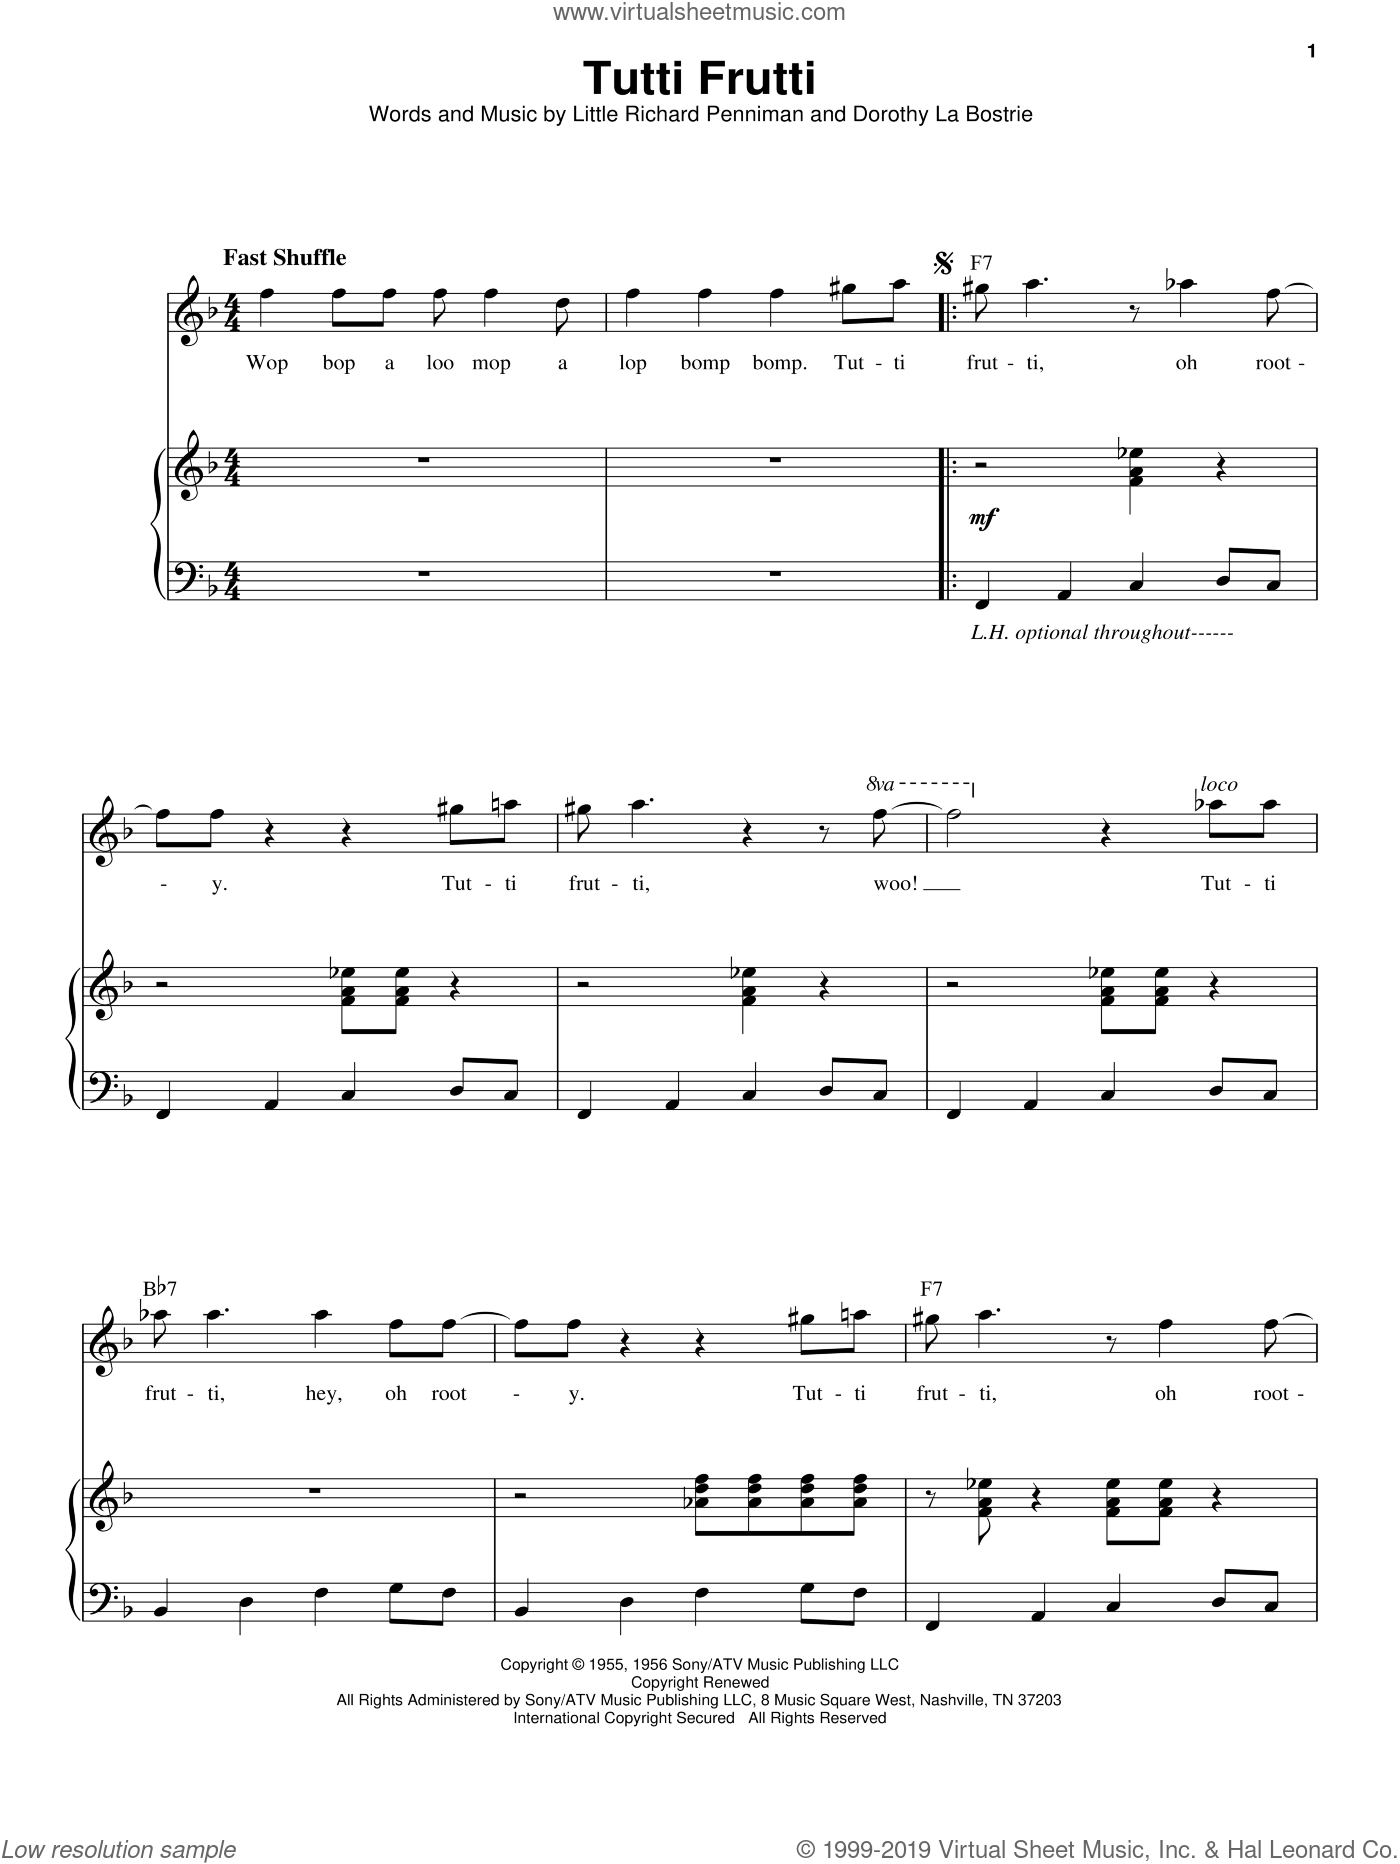 Tutti Frutti sheet music for voice and piano by Little Richard, Chuck Berry, Dorothy La Bostrie and Richard Penniman, intermediate skill level